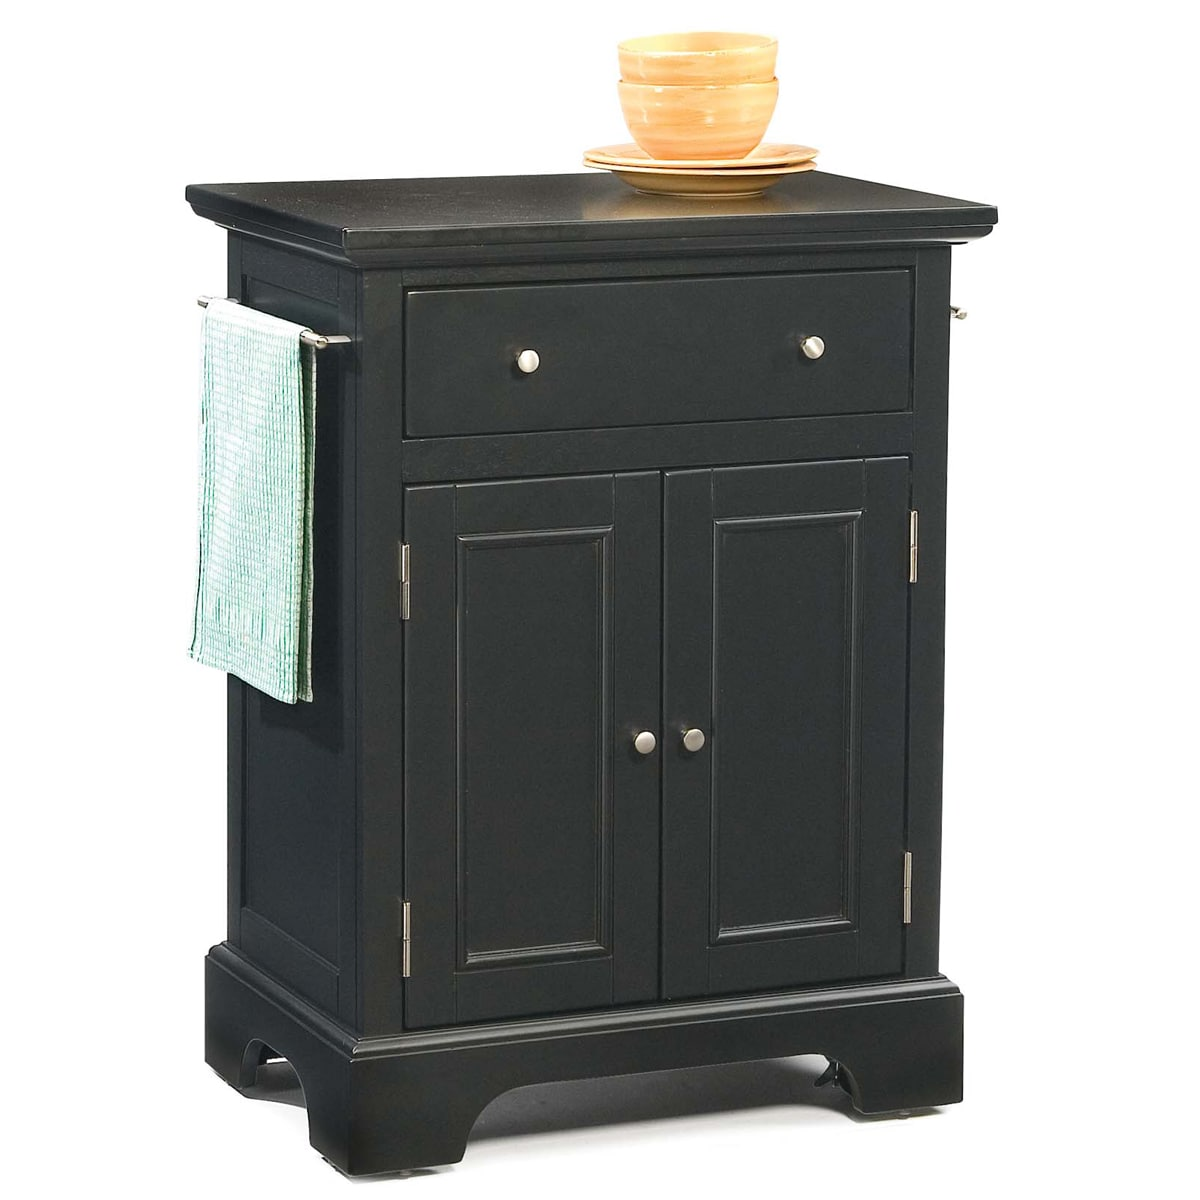 Bedford Kitchen Cart - Free Shipping Today - Overstock.com - 14475354